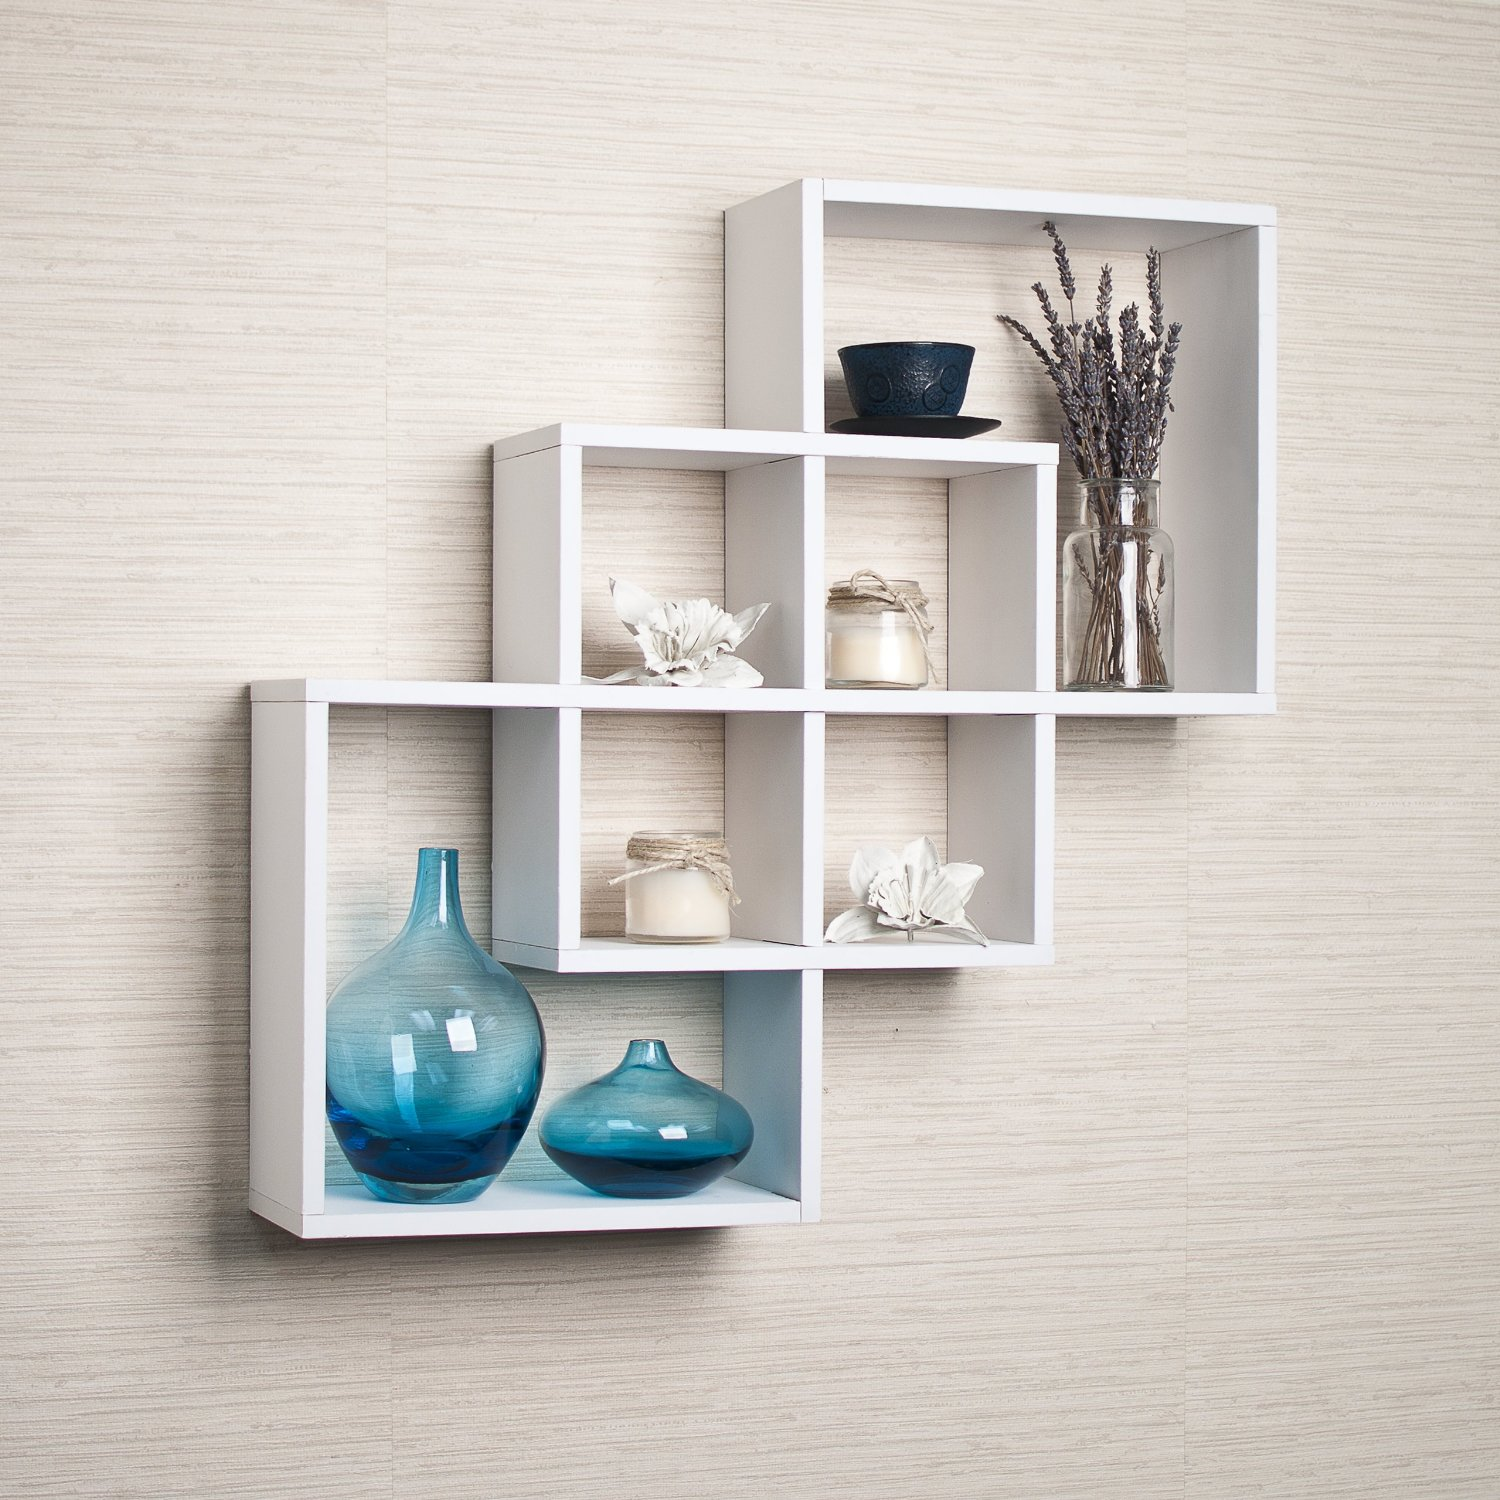 Fullsize Of Living Room Wall Shelves